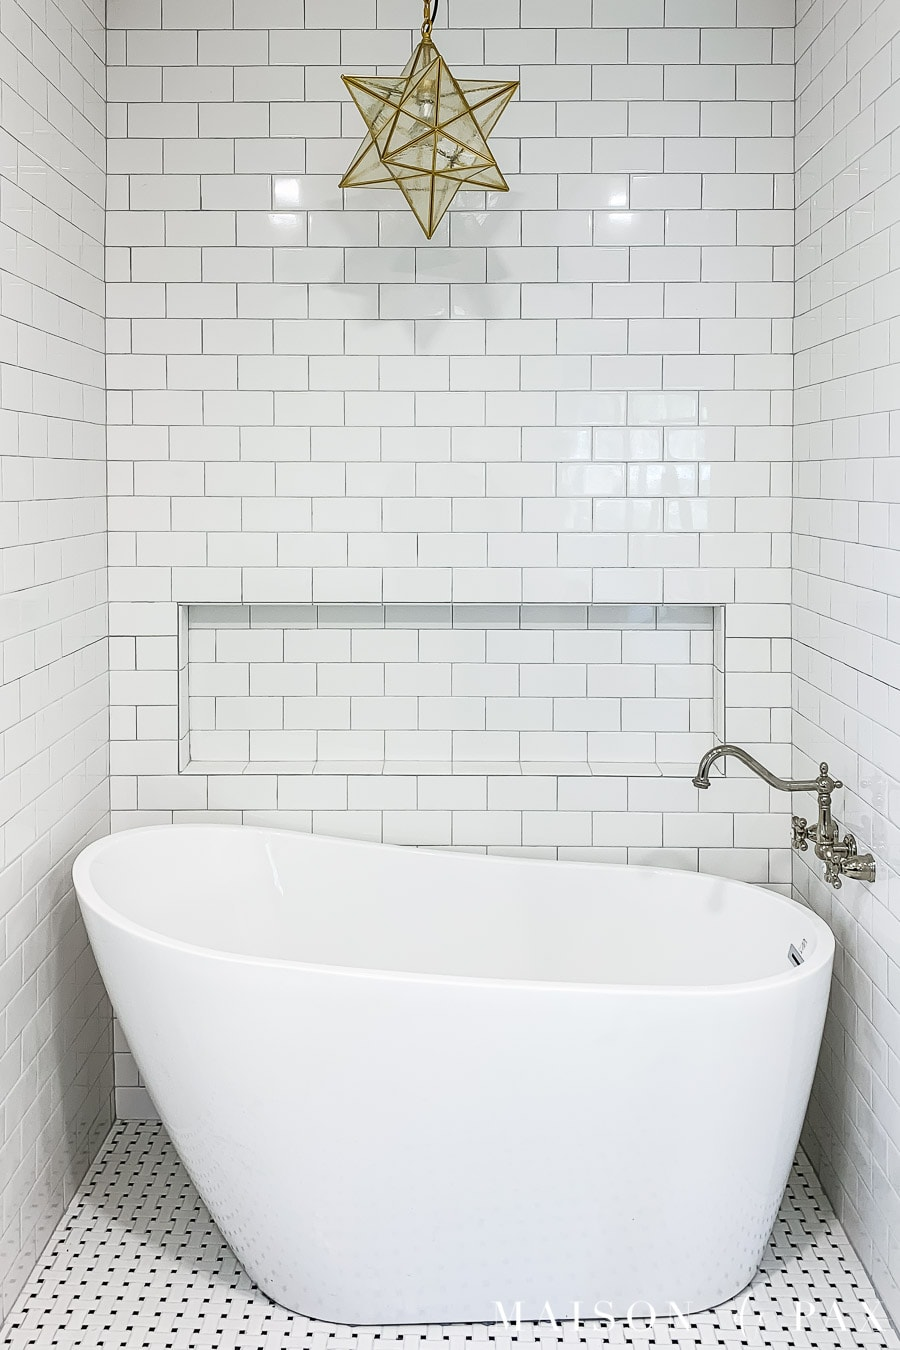 white subway tile bath surround with light gray grout